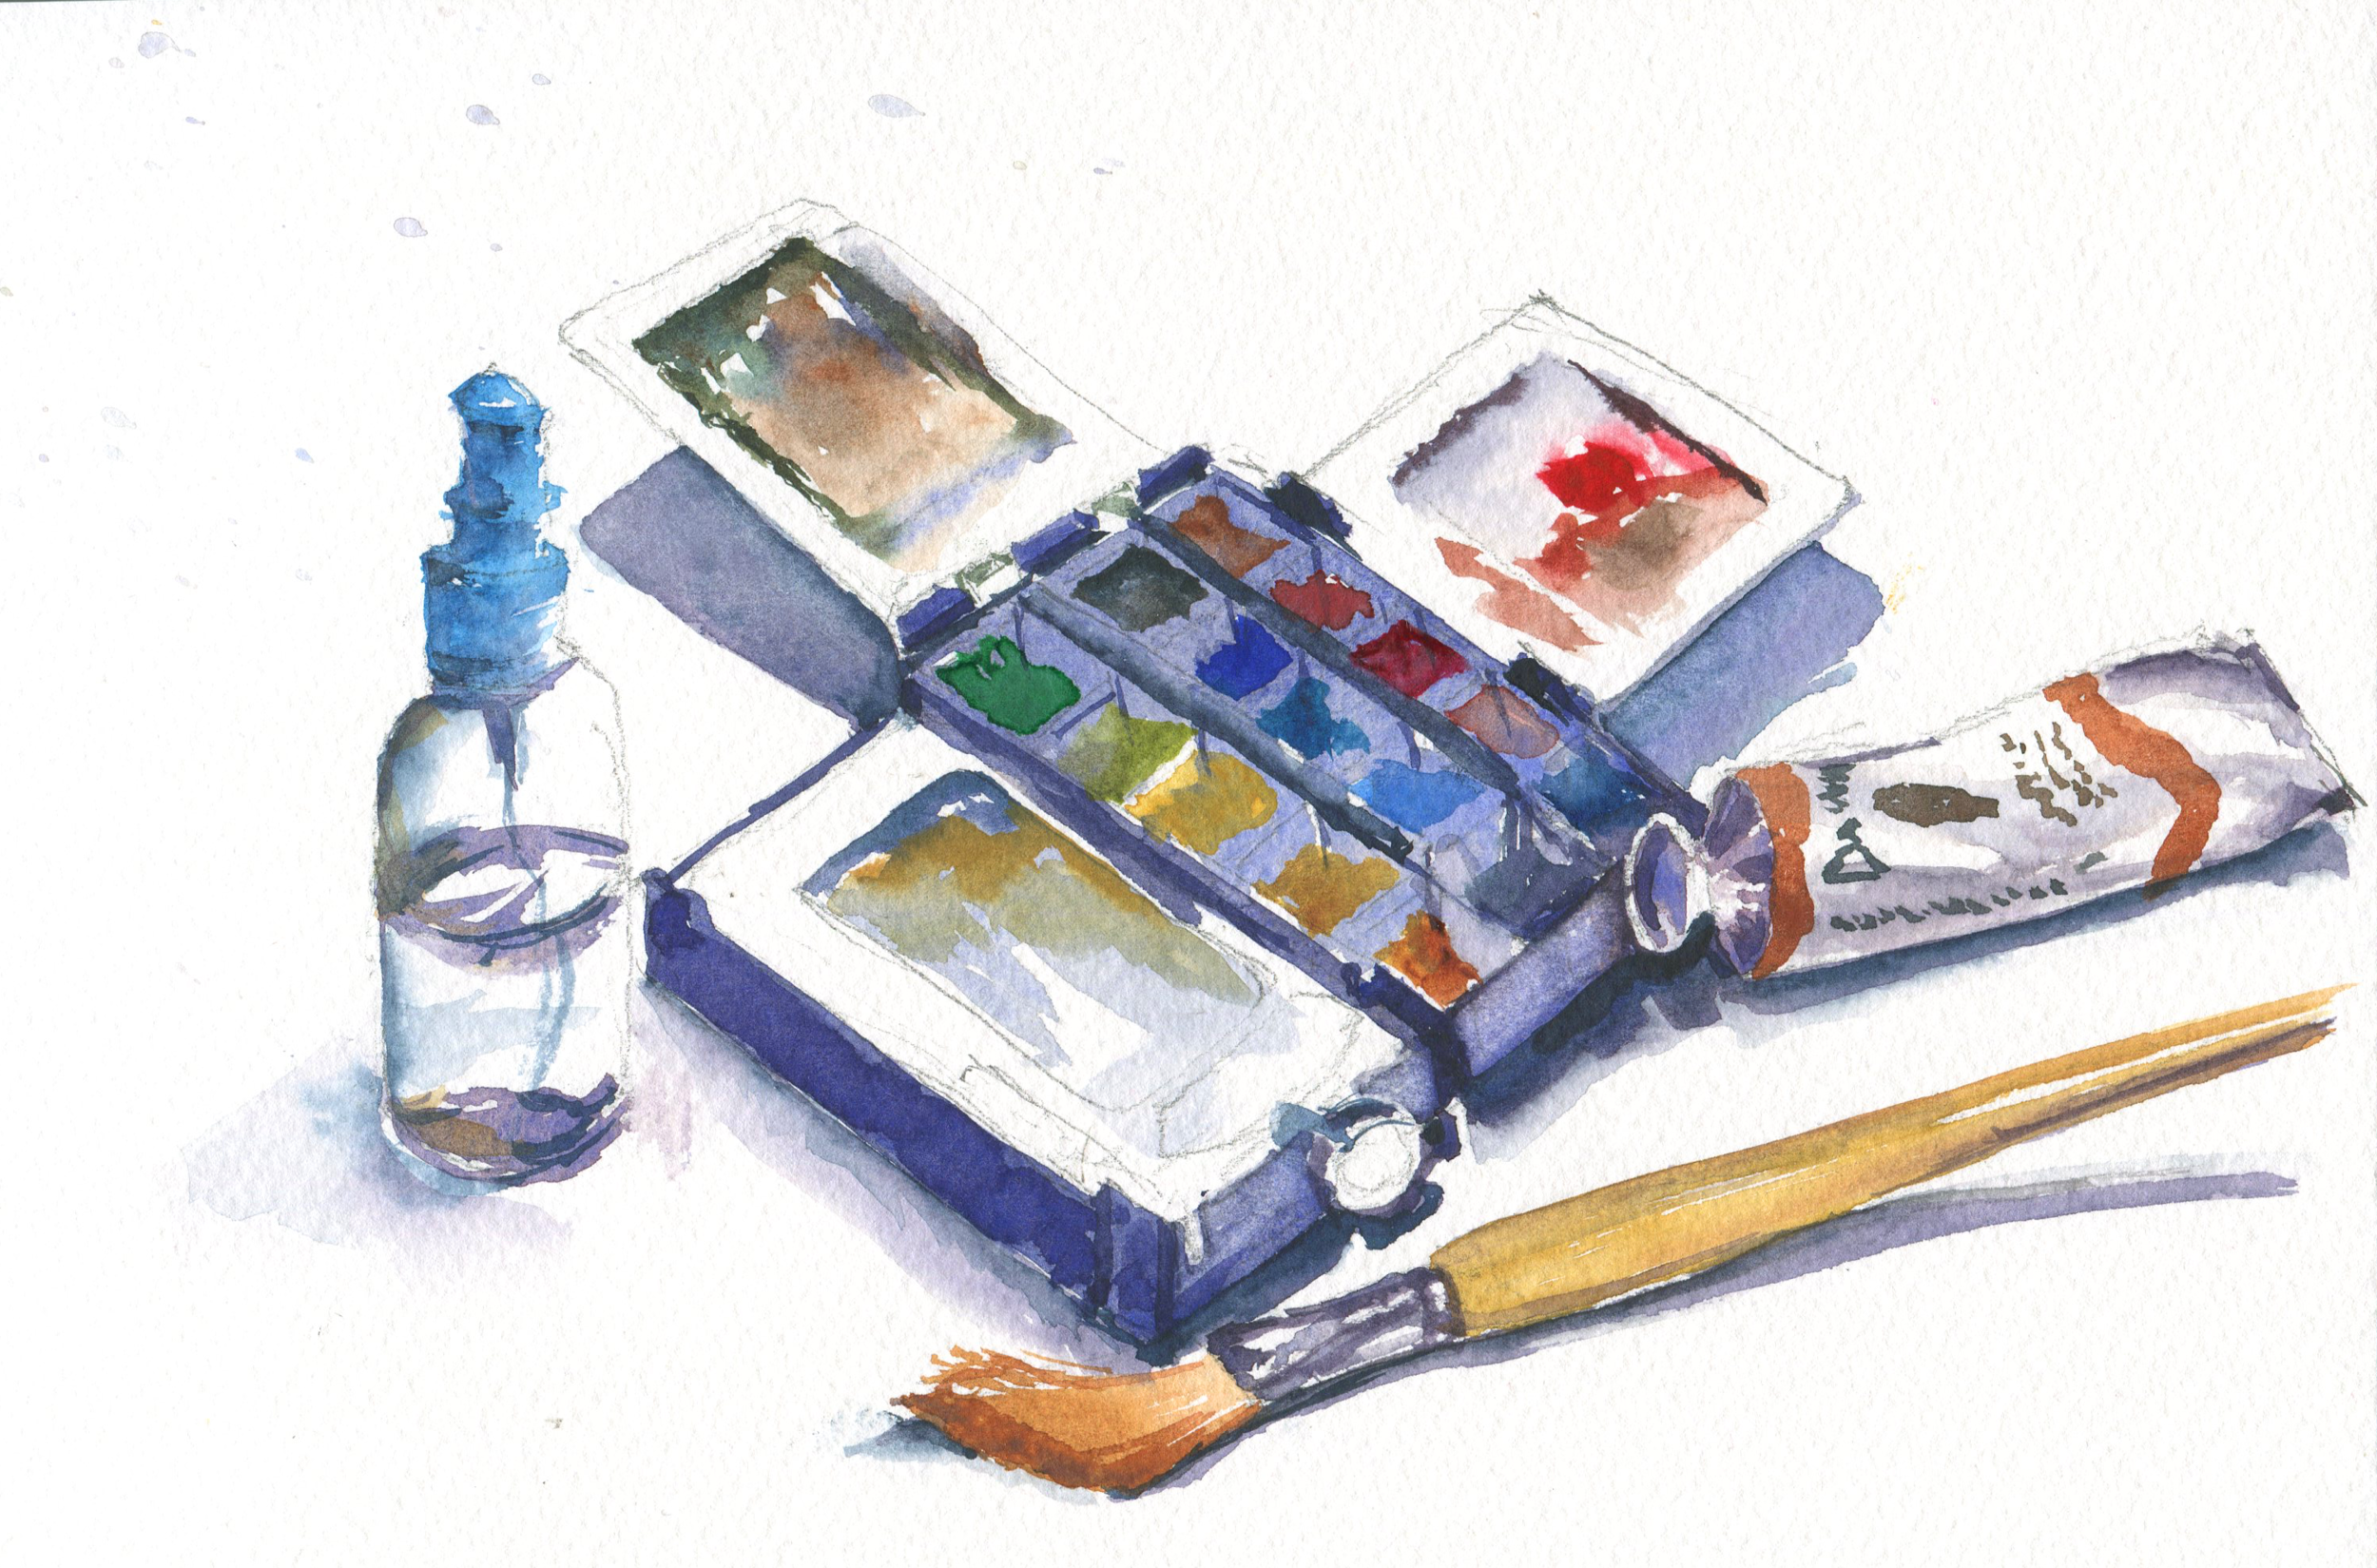 watercolor palette and brush still life in watercolor